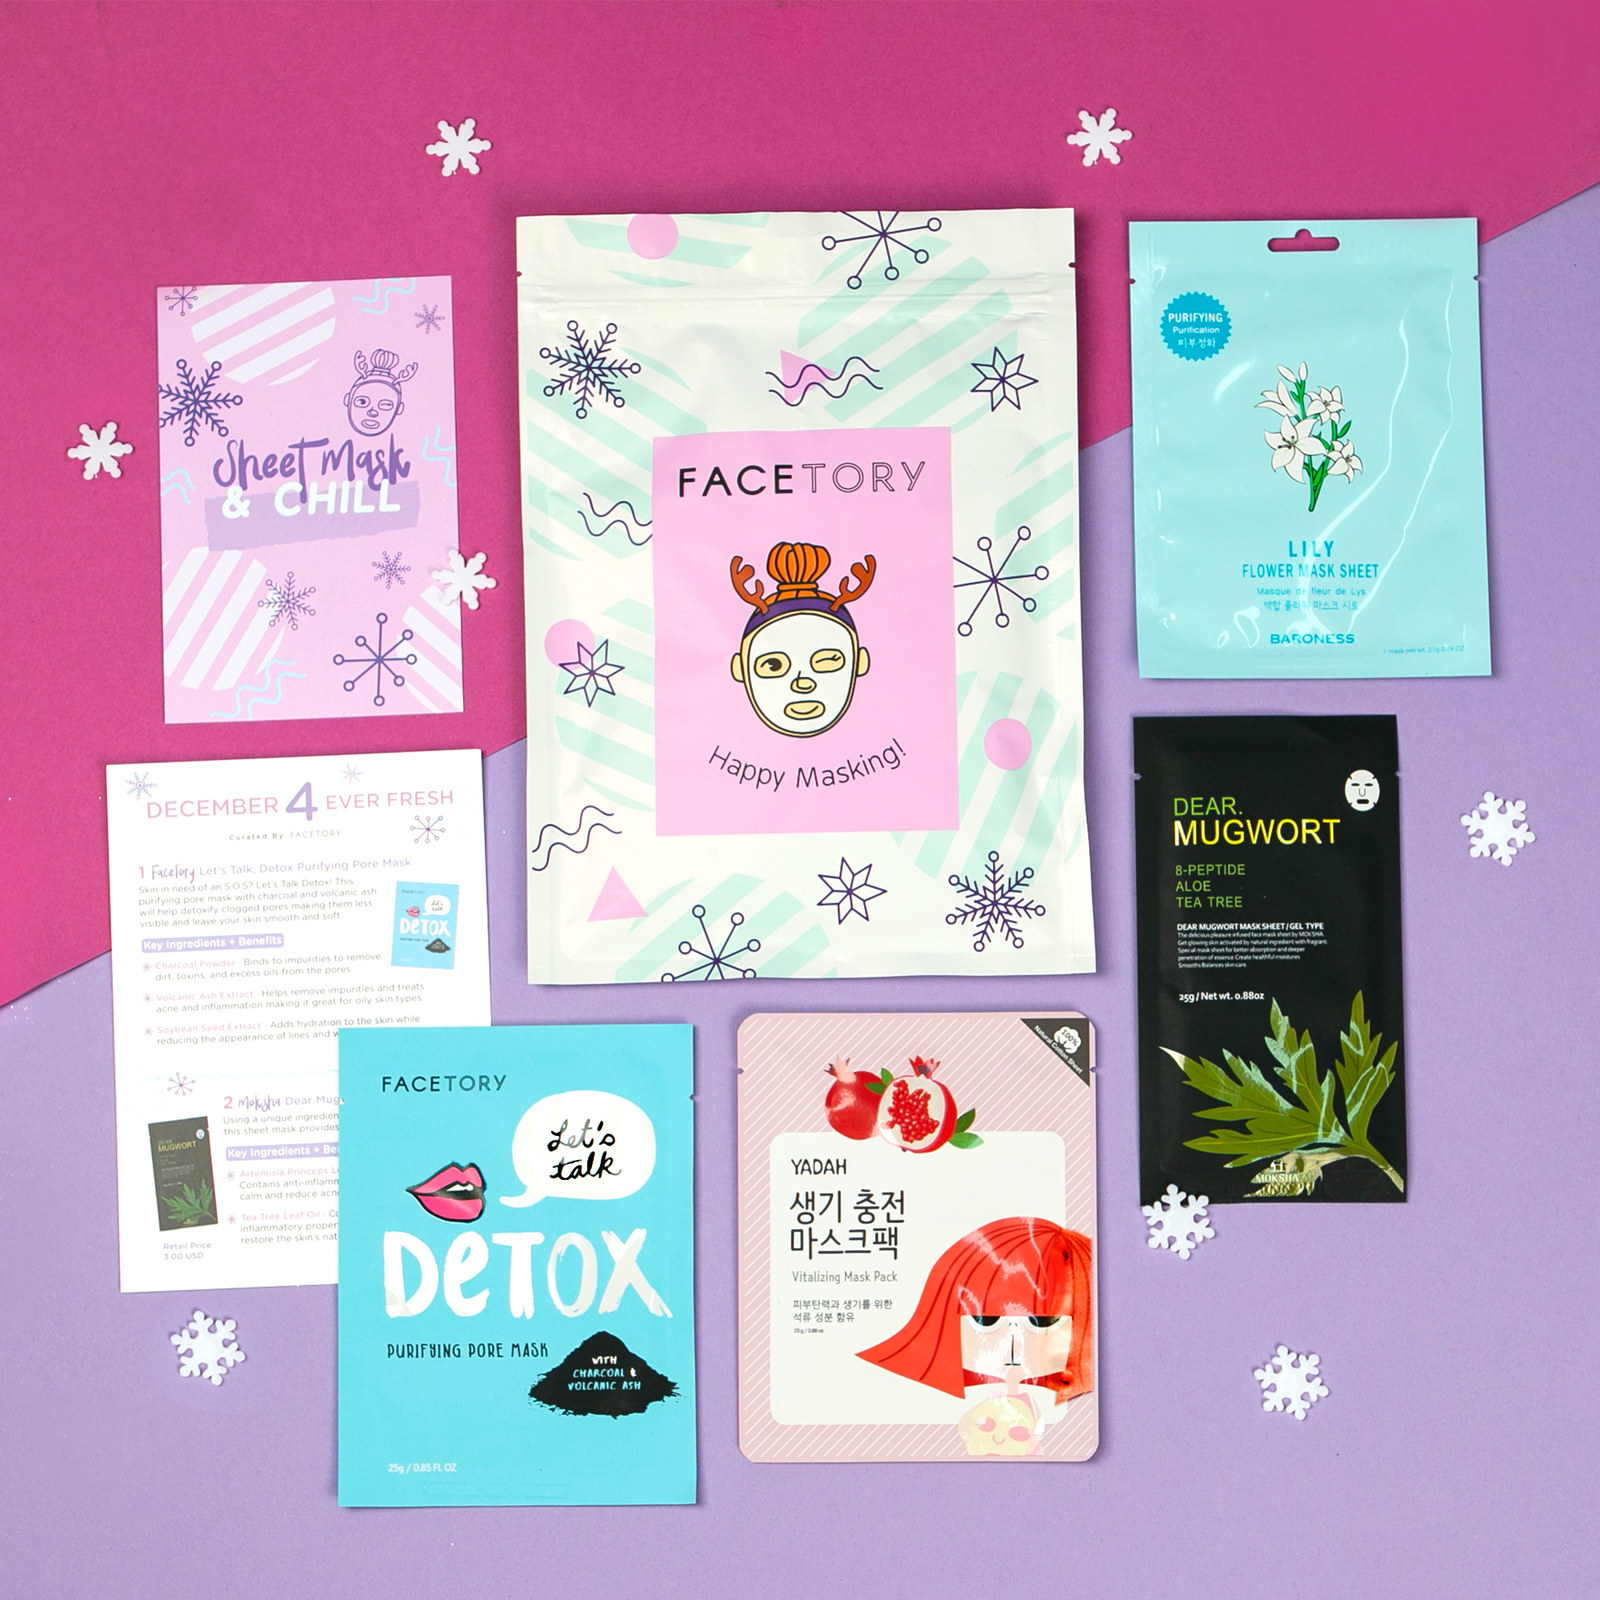 Flatlay with Facetory packaging, instructions sheet, and four face masks